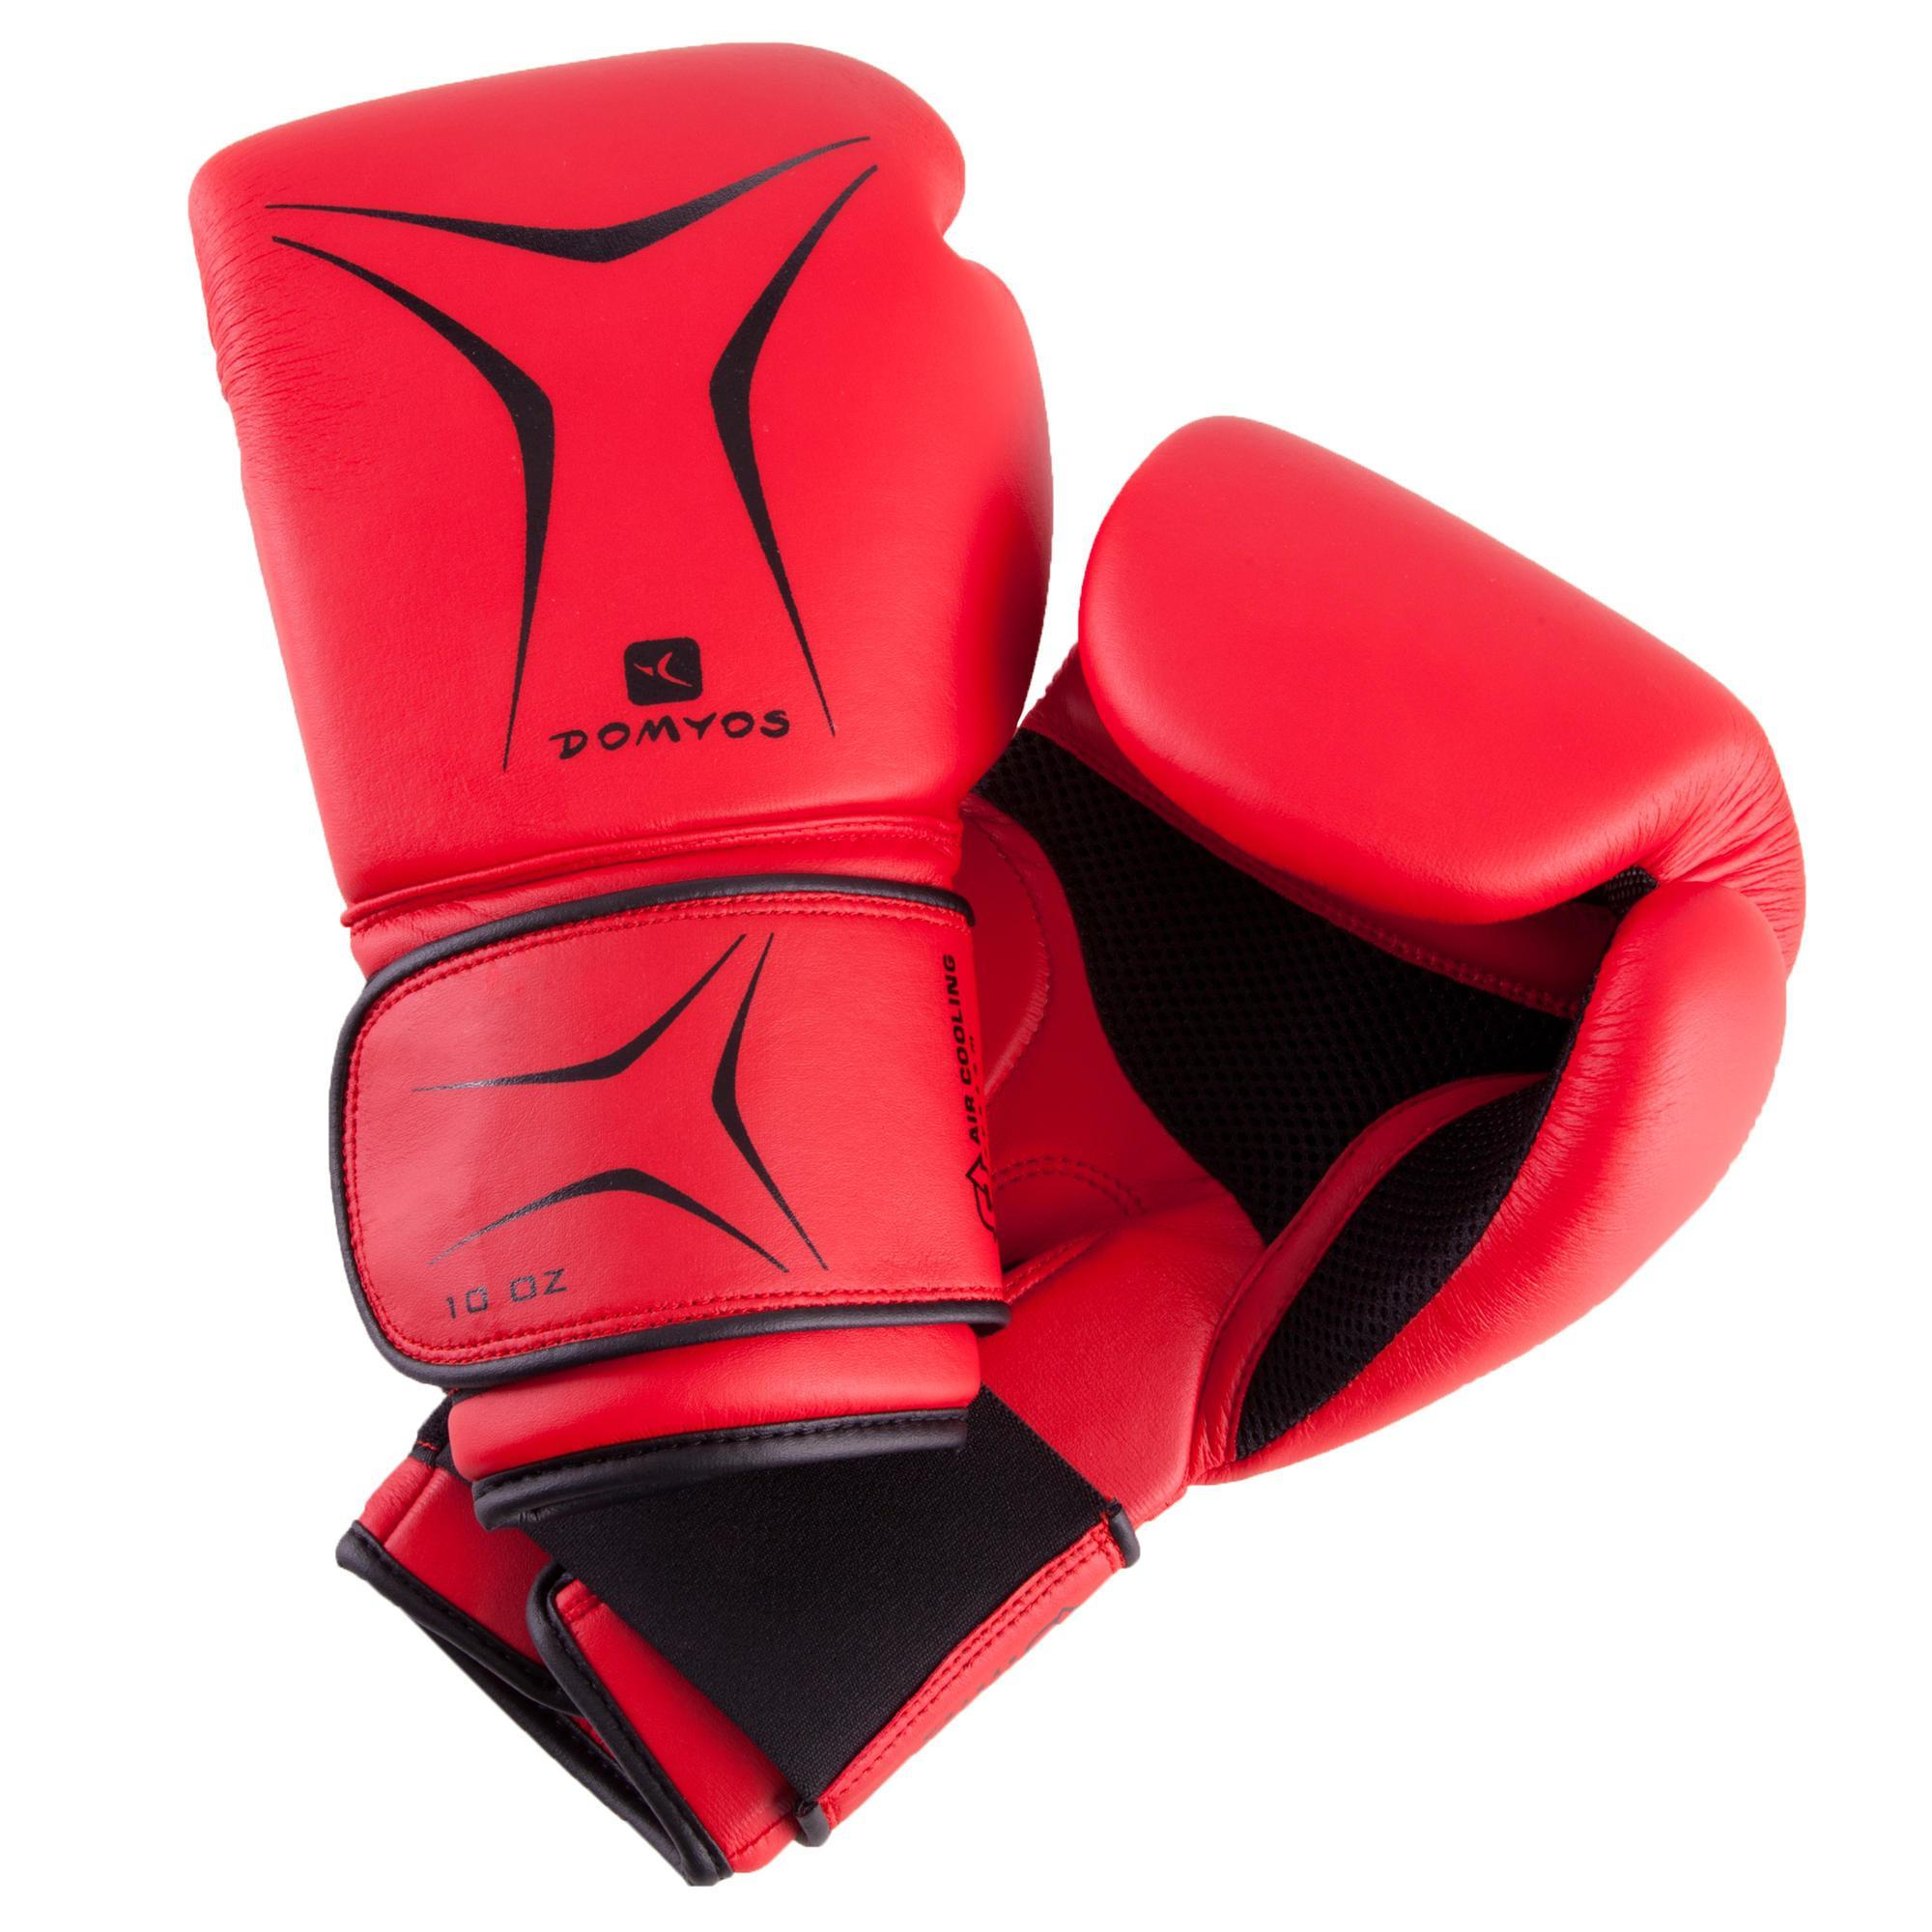 Gants de boxe fkt 180 rouge initiation rouge domyos by decathlon - Gants chauffants decathlon ...